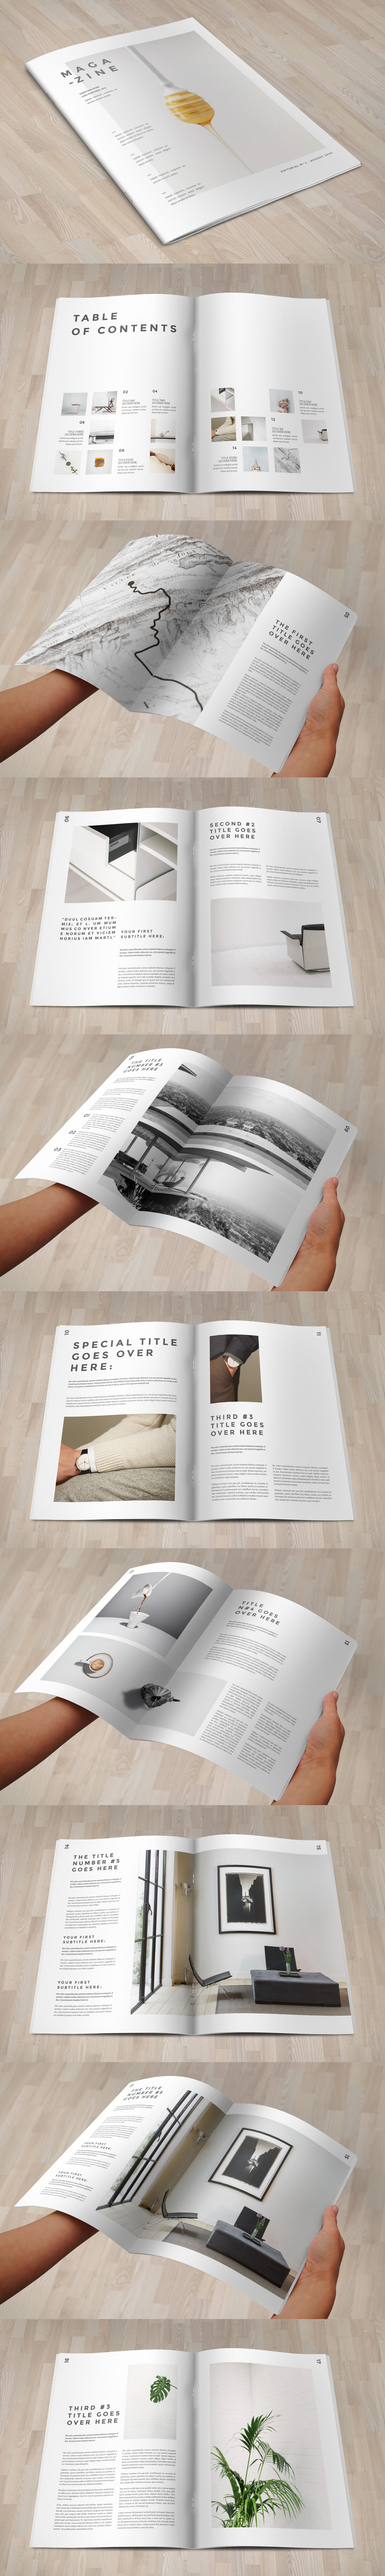 Minimal Cool White Magazine 20 Pages Template Indesign Indd